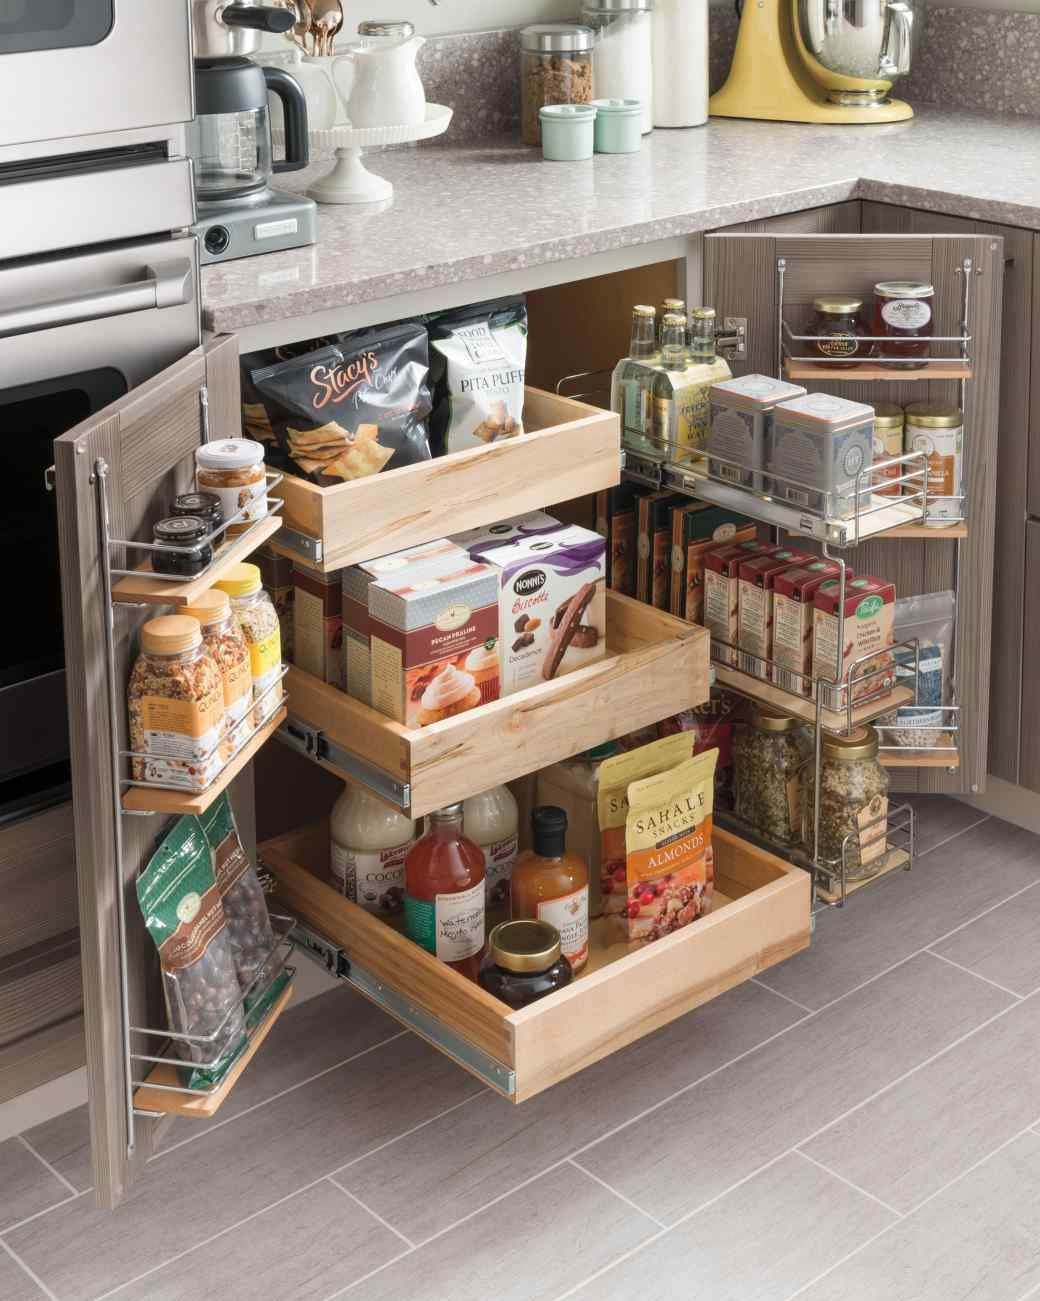 Small kitchen storage ideas for a more efficient space storage ideas organizing and storage - Pinterest small kitchen ideas ...